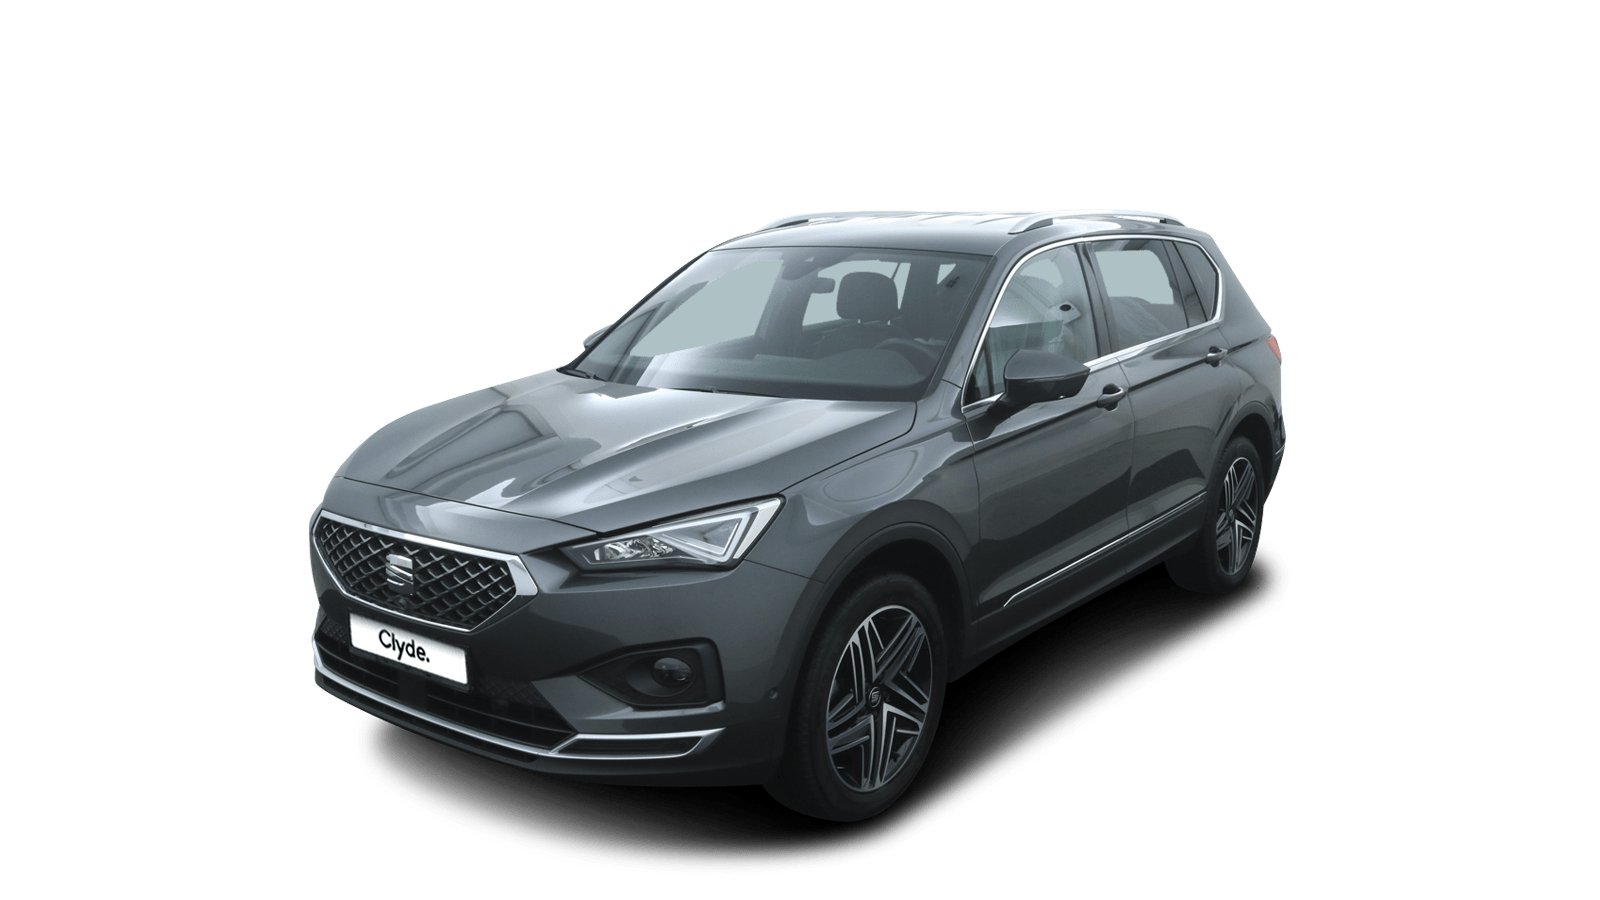 SEAT Tarraco Grey front - Clyde car subscription